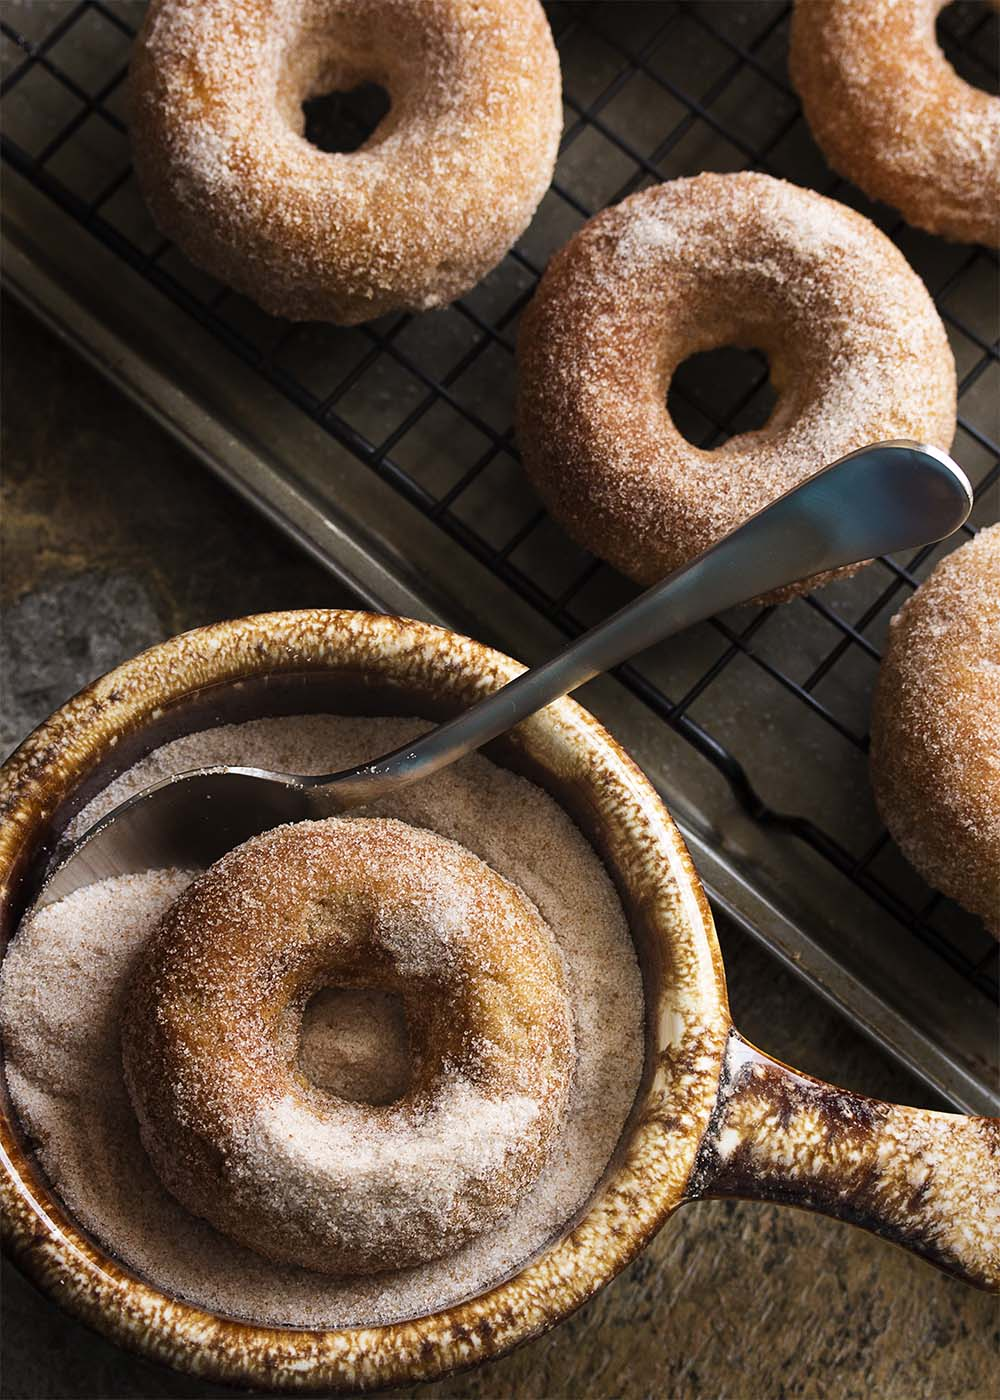 Churros just got a little bit healthier! No deep frying needed. Baked churro donuts are make in a donut pan and rolled in cinnamon sugar. This means you can totally justify the spicy chocolate sauce to dip them in. | justalittlebitofbacon.com